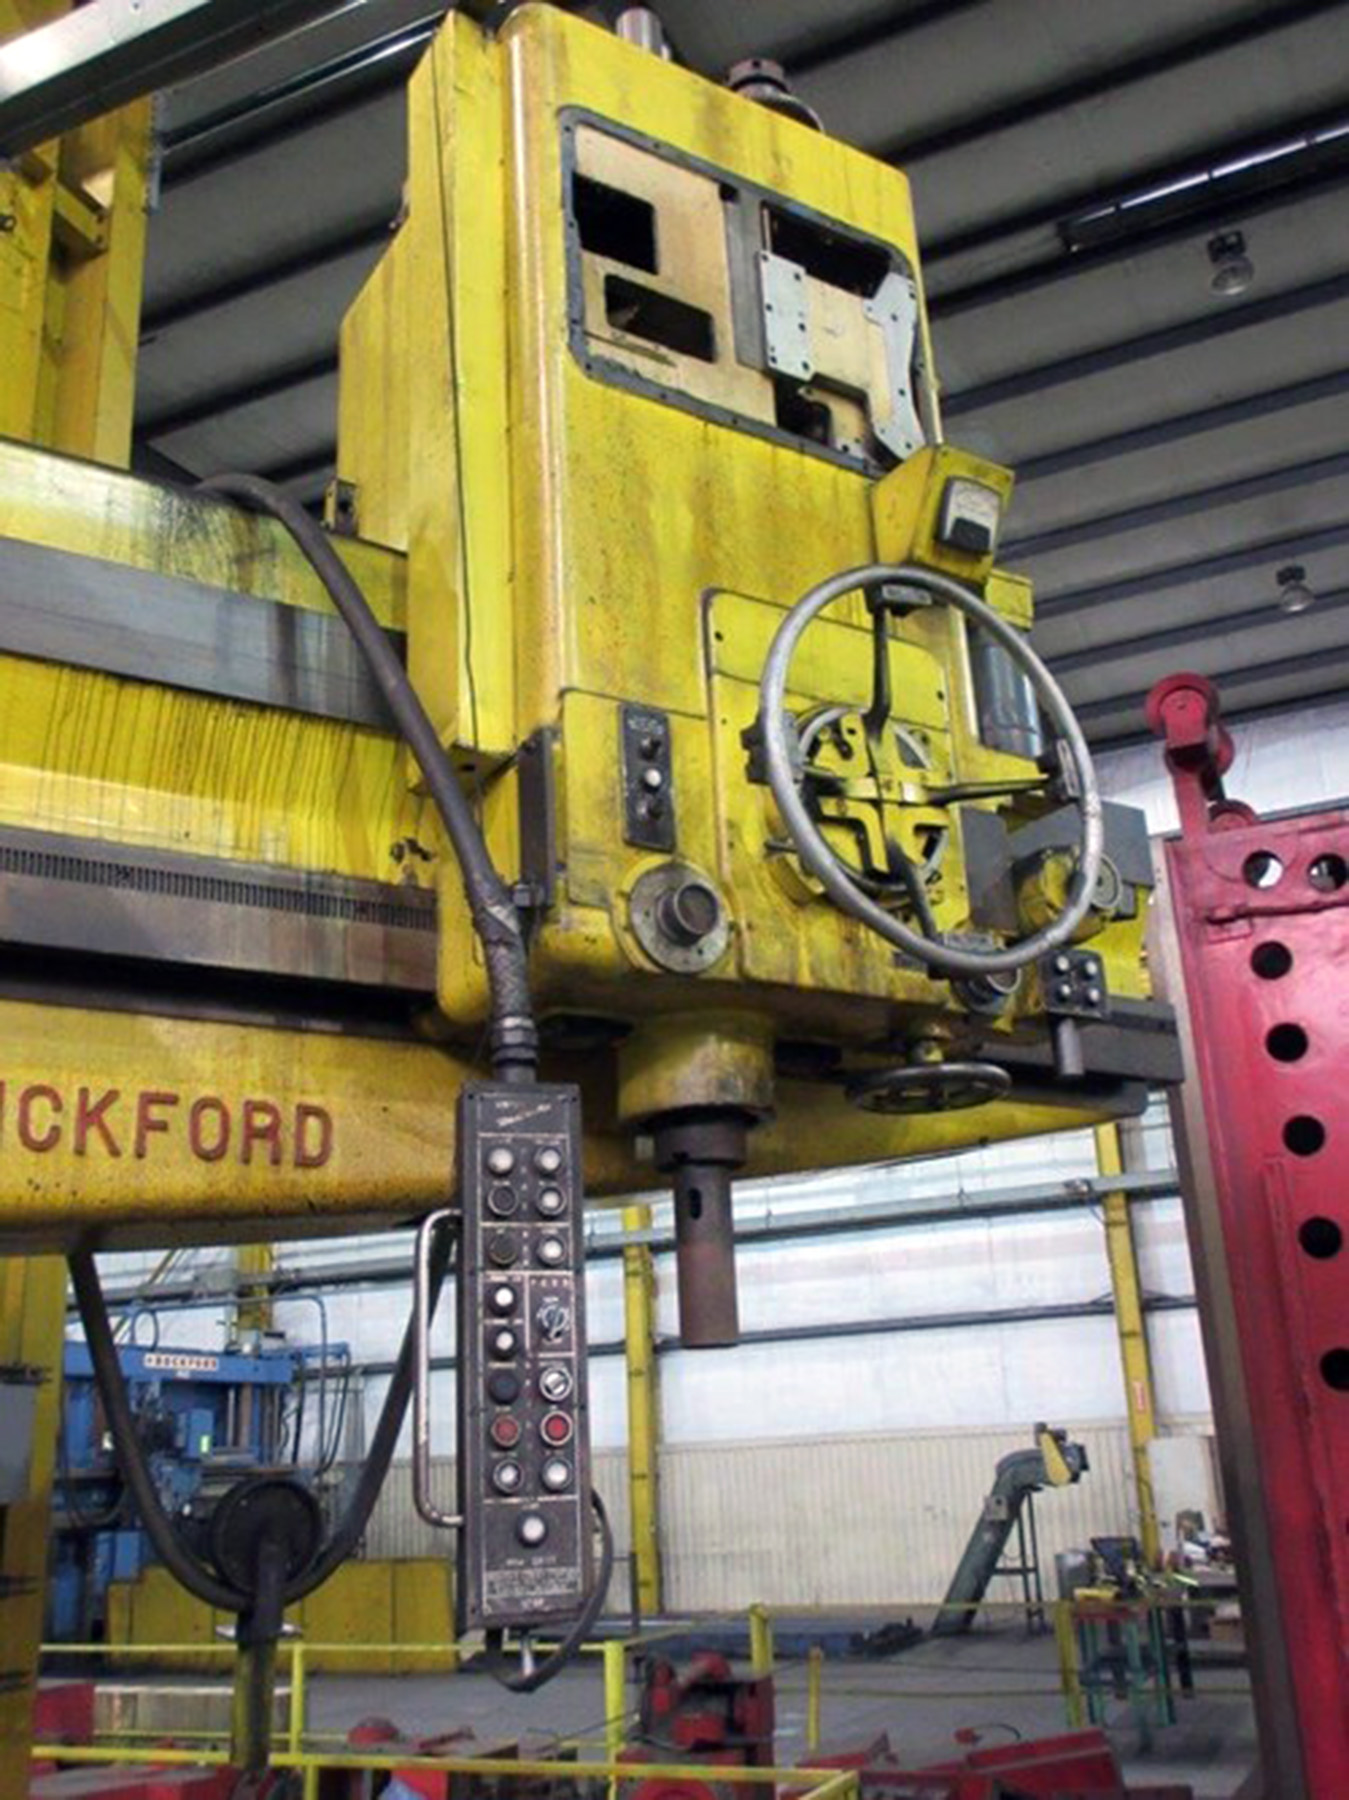 """Lot 61 - GIDDINGS & LEWIS BICKFORD 10' X 34"""" RADIAL ARM DRILL, drills to center of 240"""" circle, pendant"""